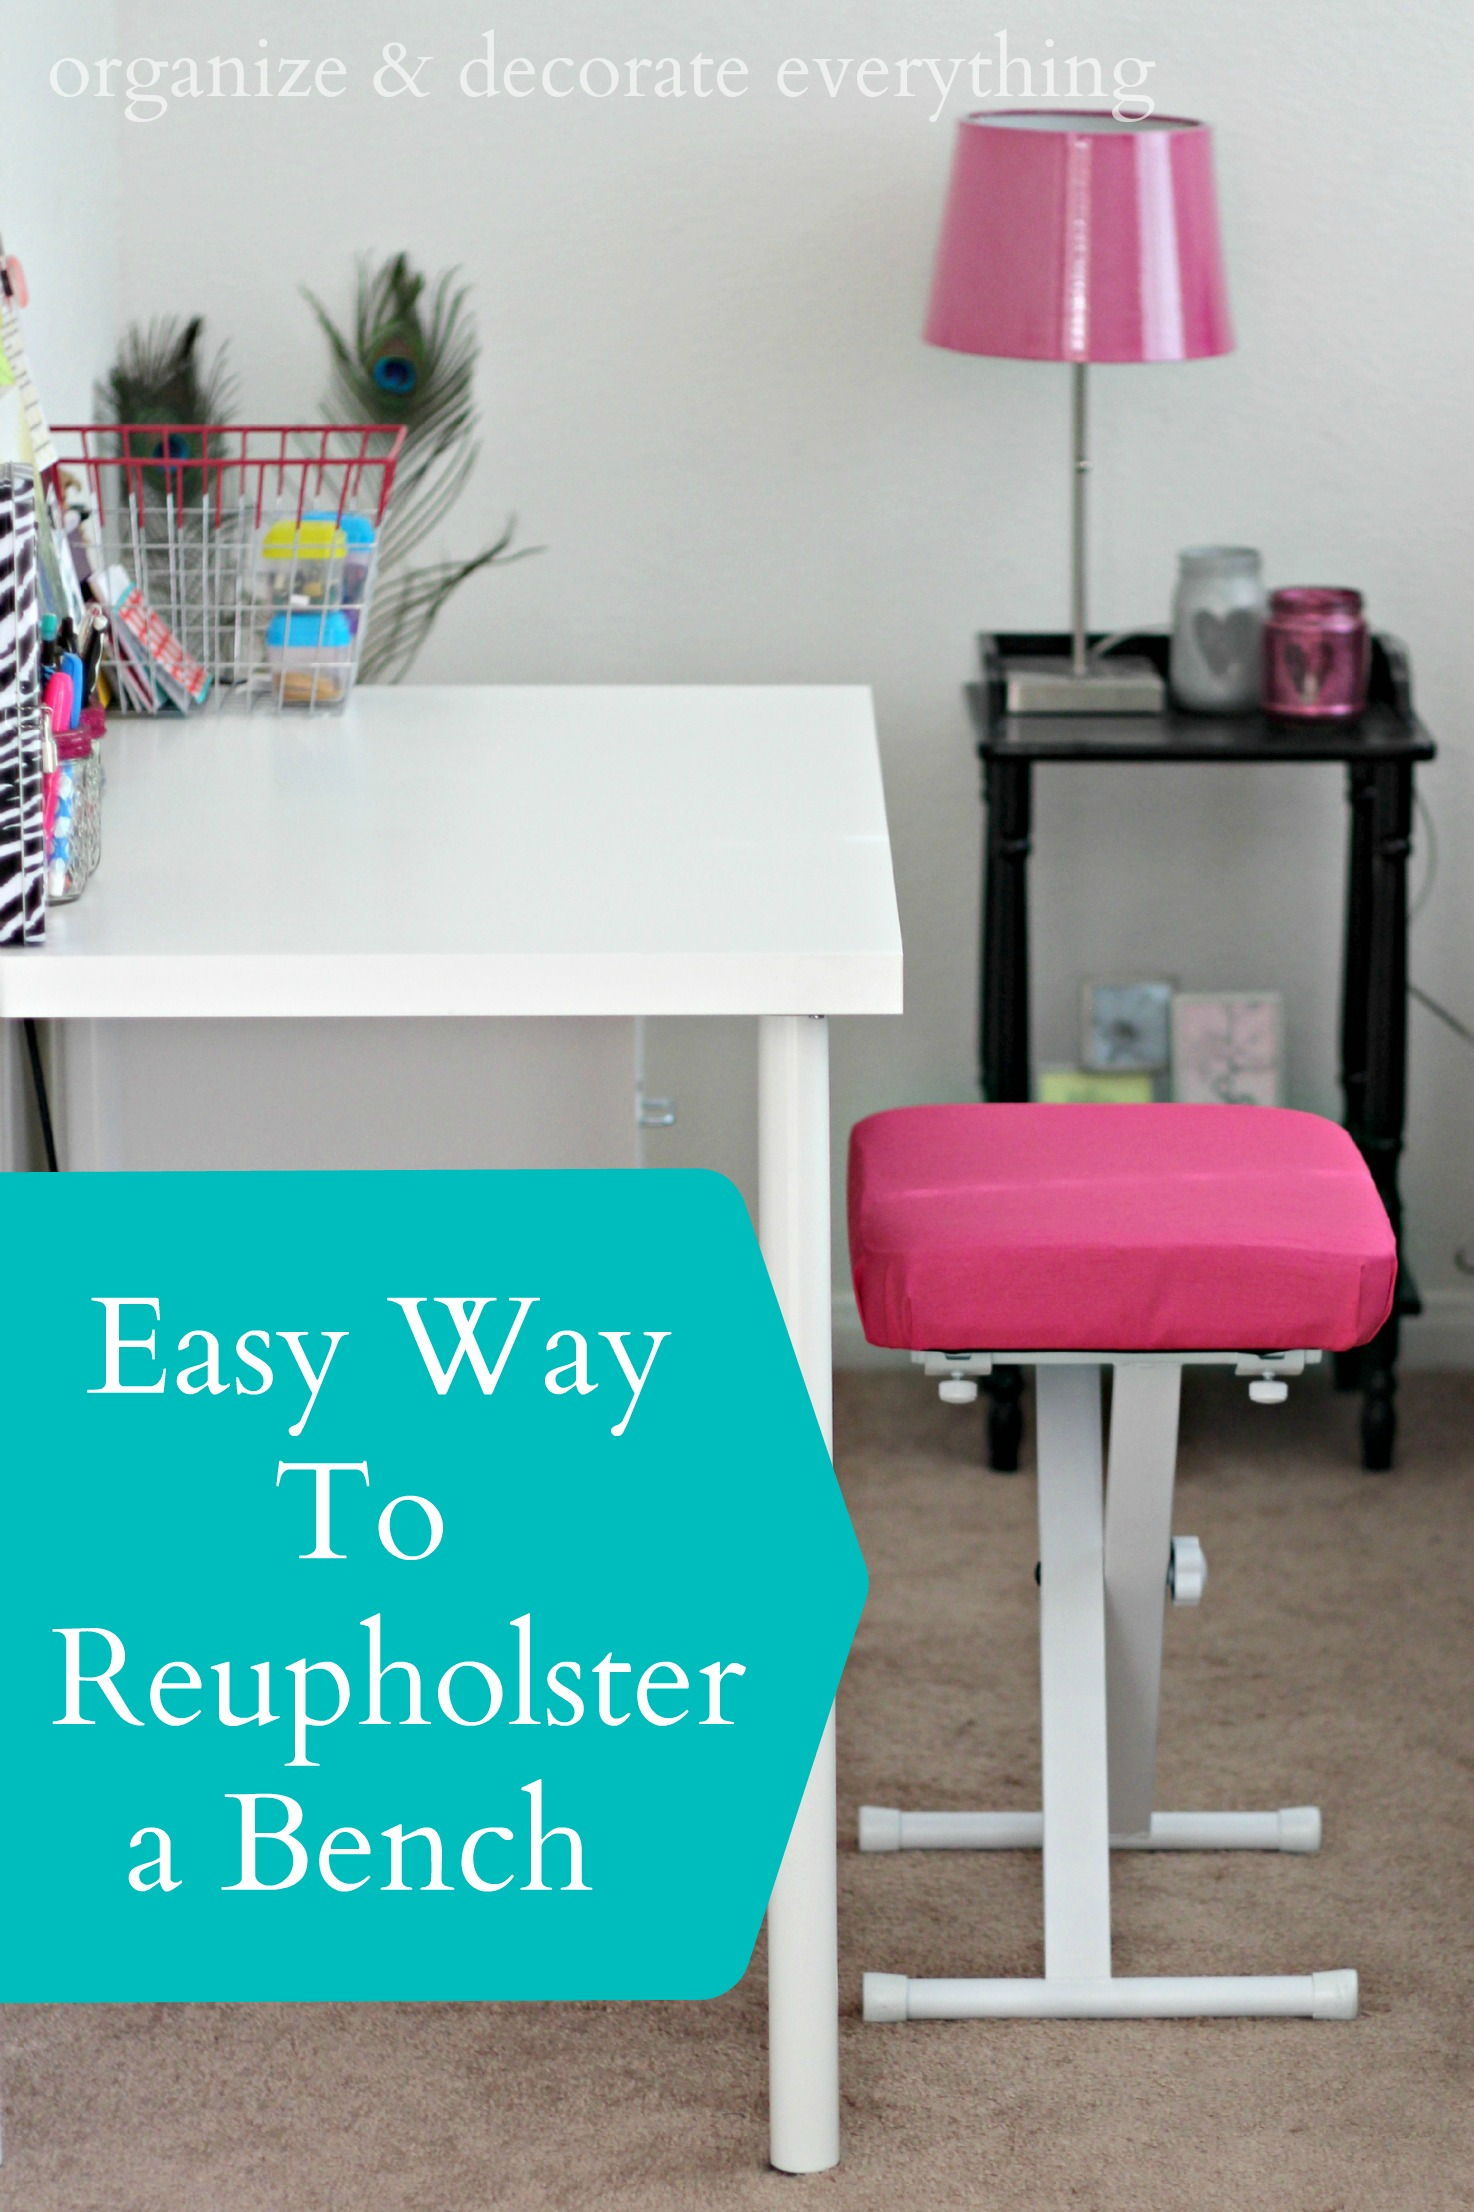 Easy Way To Contour Your Face: Easy Way To Reupholster A Bench